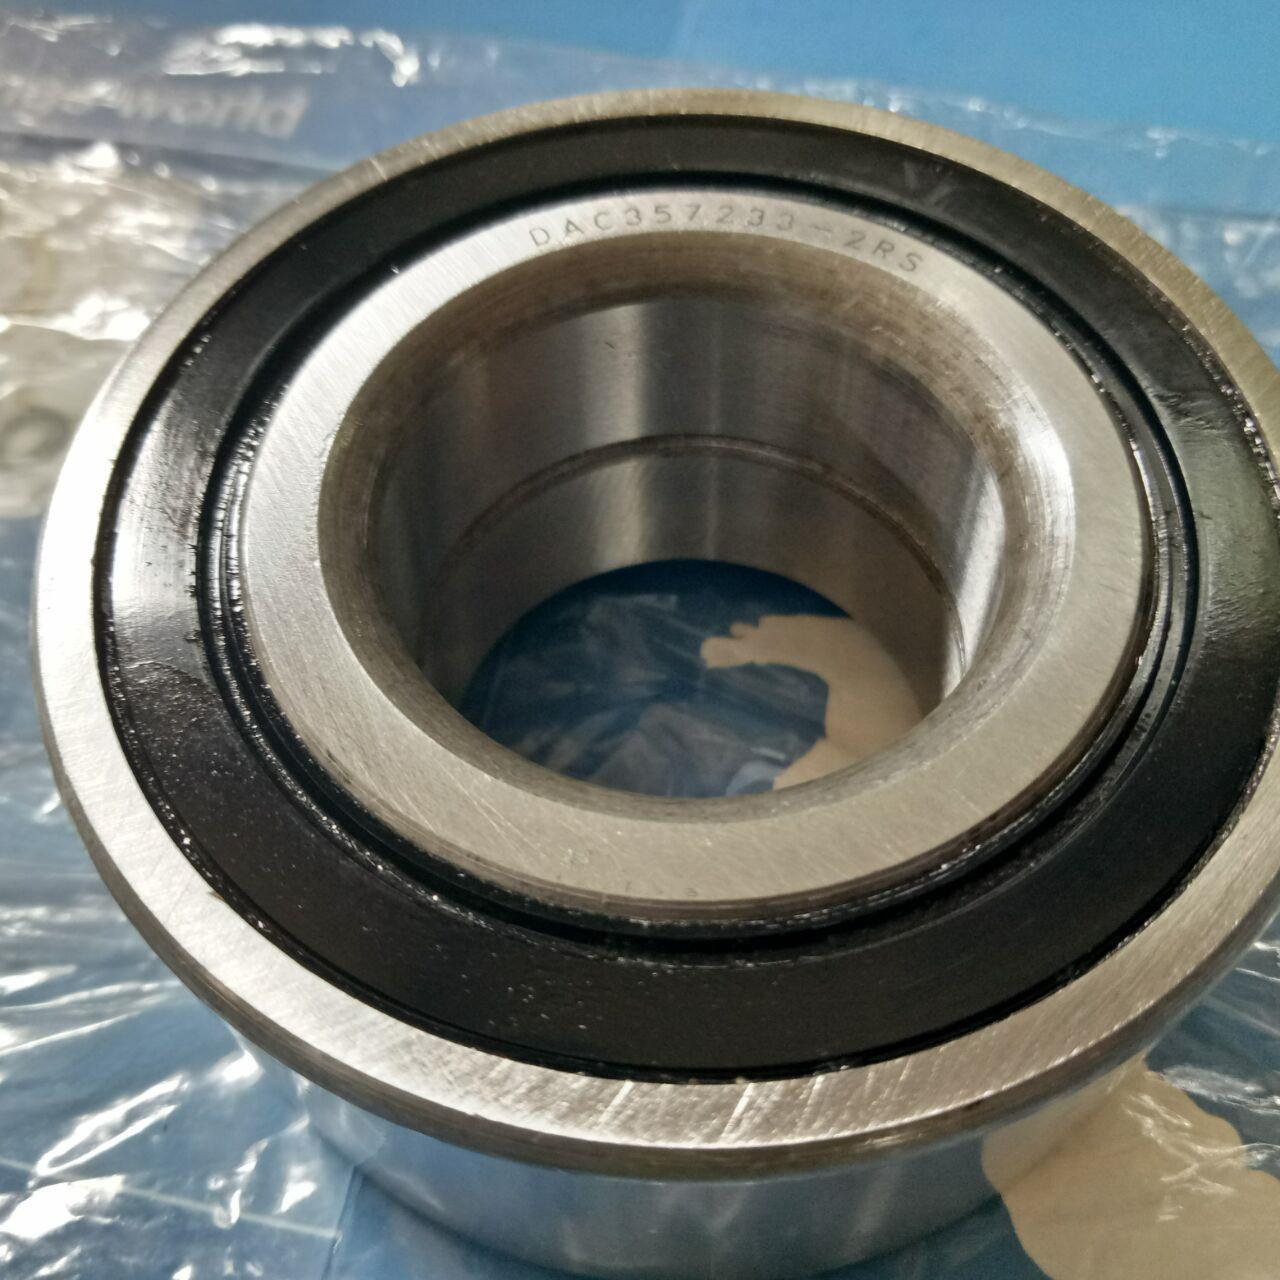 Wholesale DAC357233-2RS Wheel Bearings Used In The Automotive Axle At The Load from china suppliers